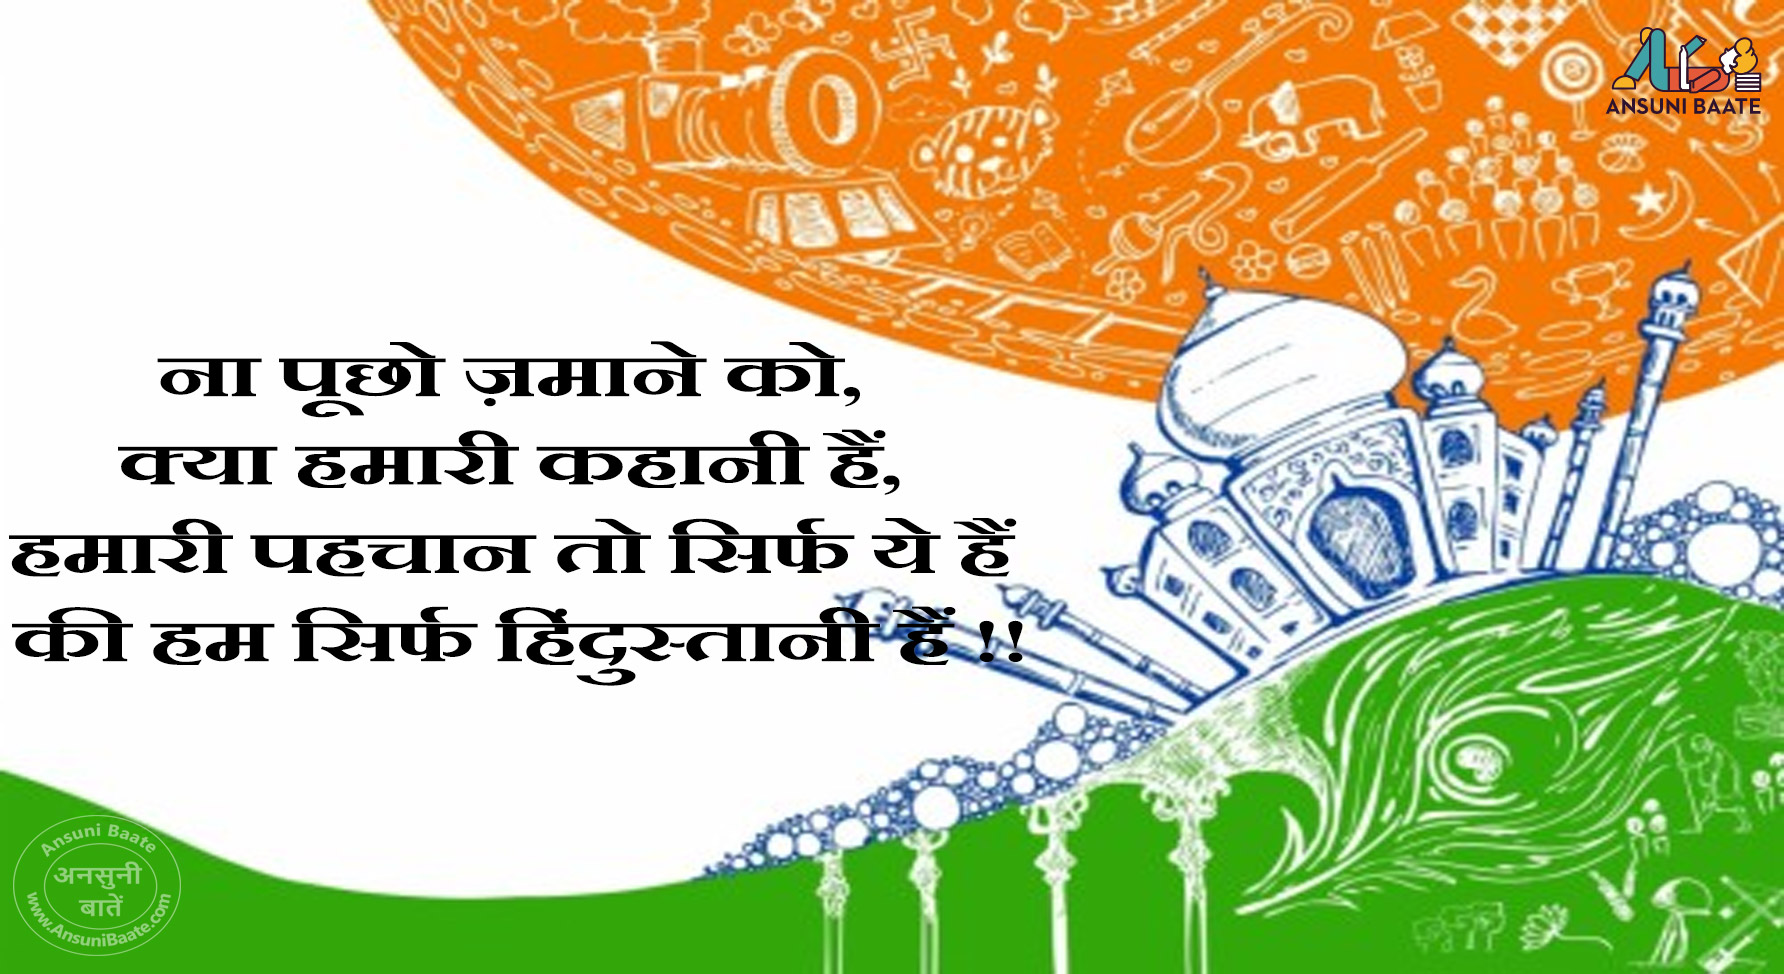 15 August wishes Photo Gallery In Hindi, Happy 15 August Sms Wishes for Indian Flag, Independence day best wishes in hindi, Independence day wishes for facebook in Hindi, Independence day wishes for Whatsapp in Hindi, swatantrata diwas